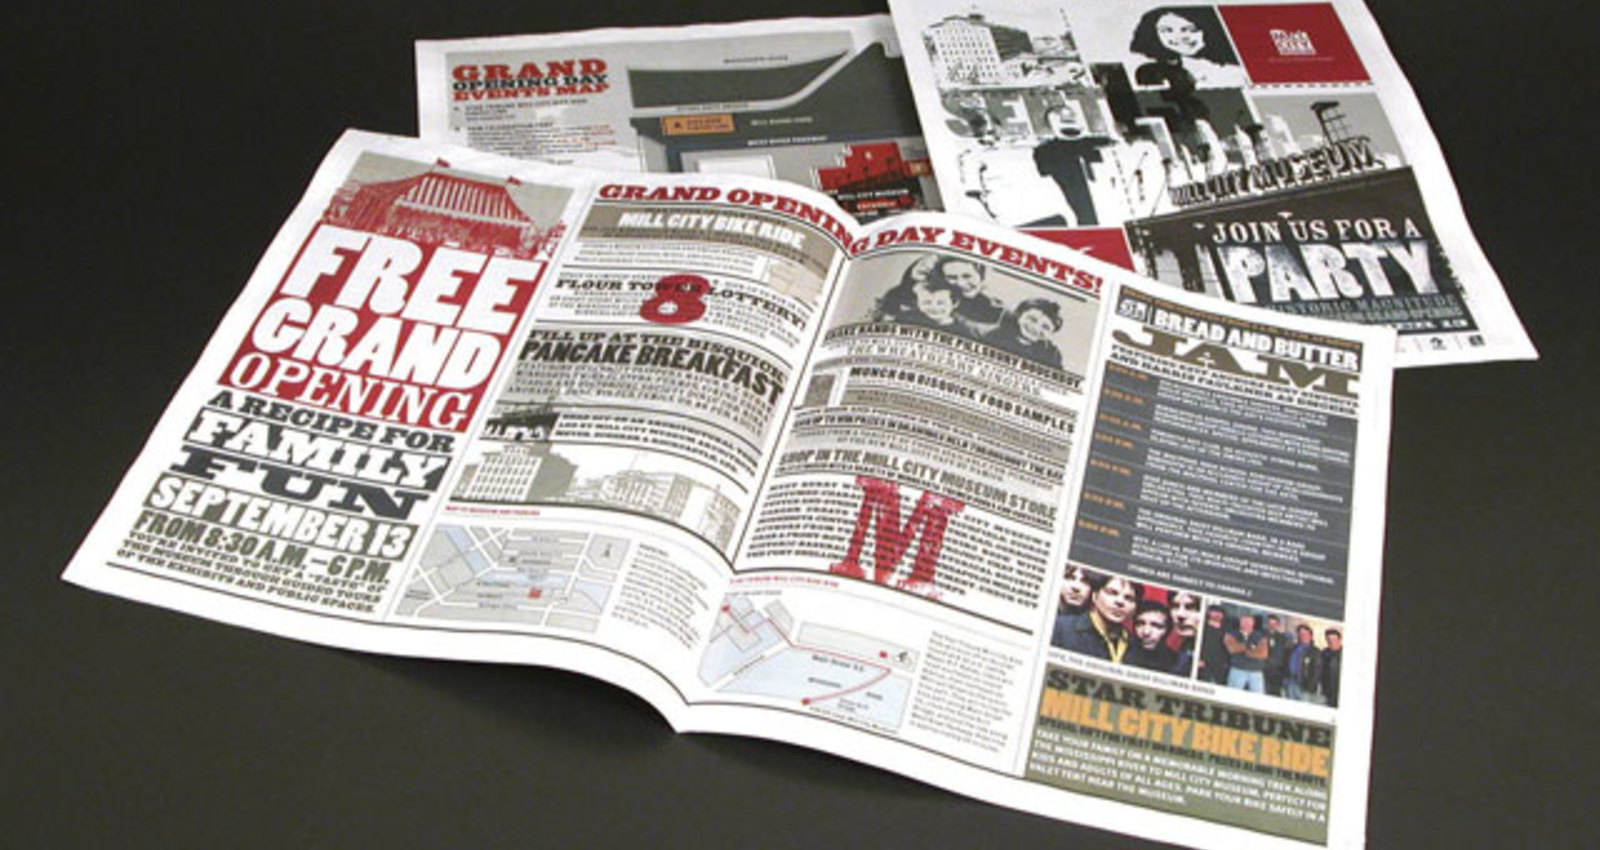 Grand Opening Newspaper Ad, Grand Opening Invitations, Site Guide